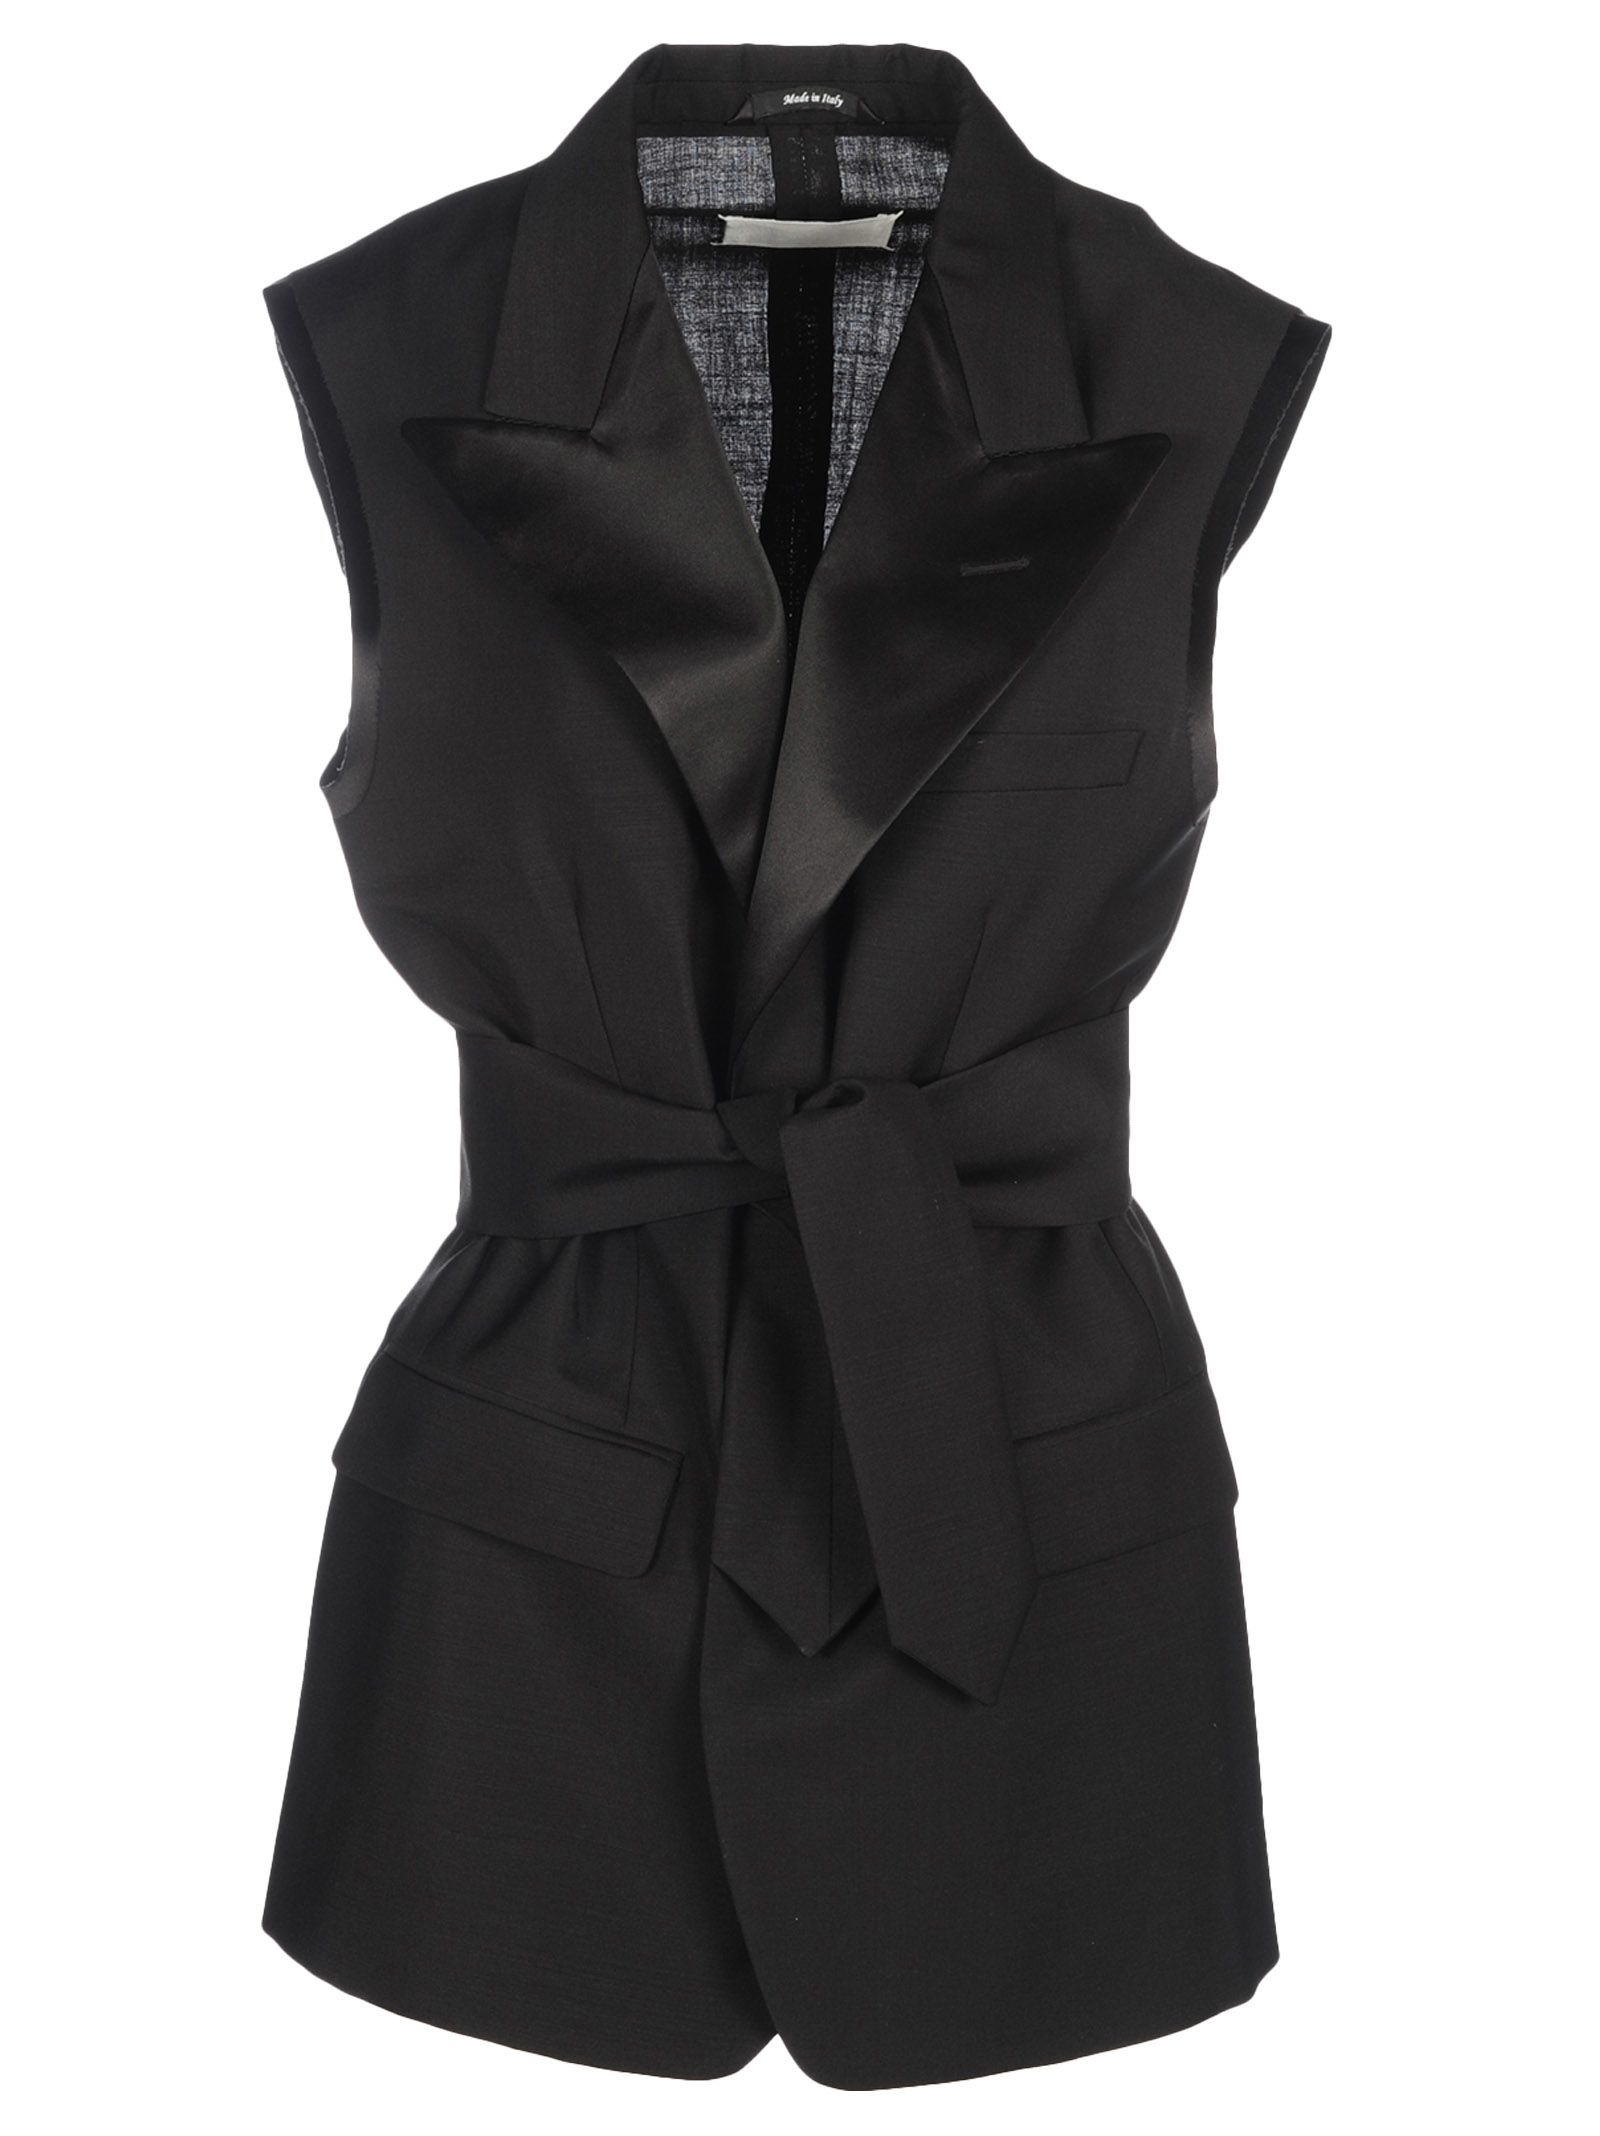 Top Quality Best Deals Mohair belted waistcoat - Black Maison Martin Margiela Discount Lowest Price Free Shipping 2018 New Sast Cheap Online d6ugM